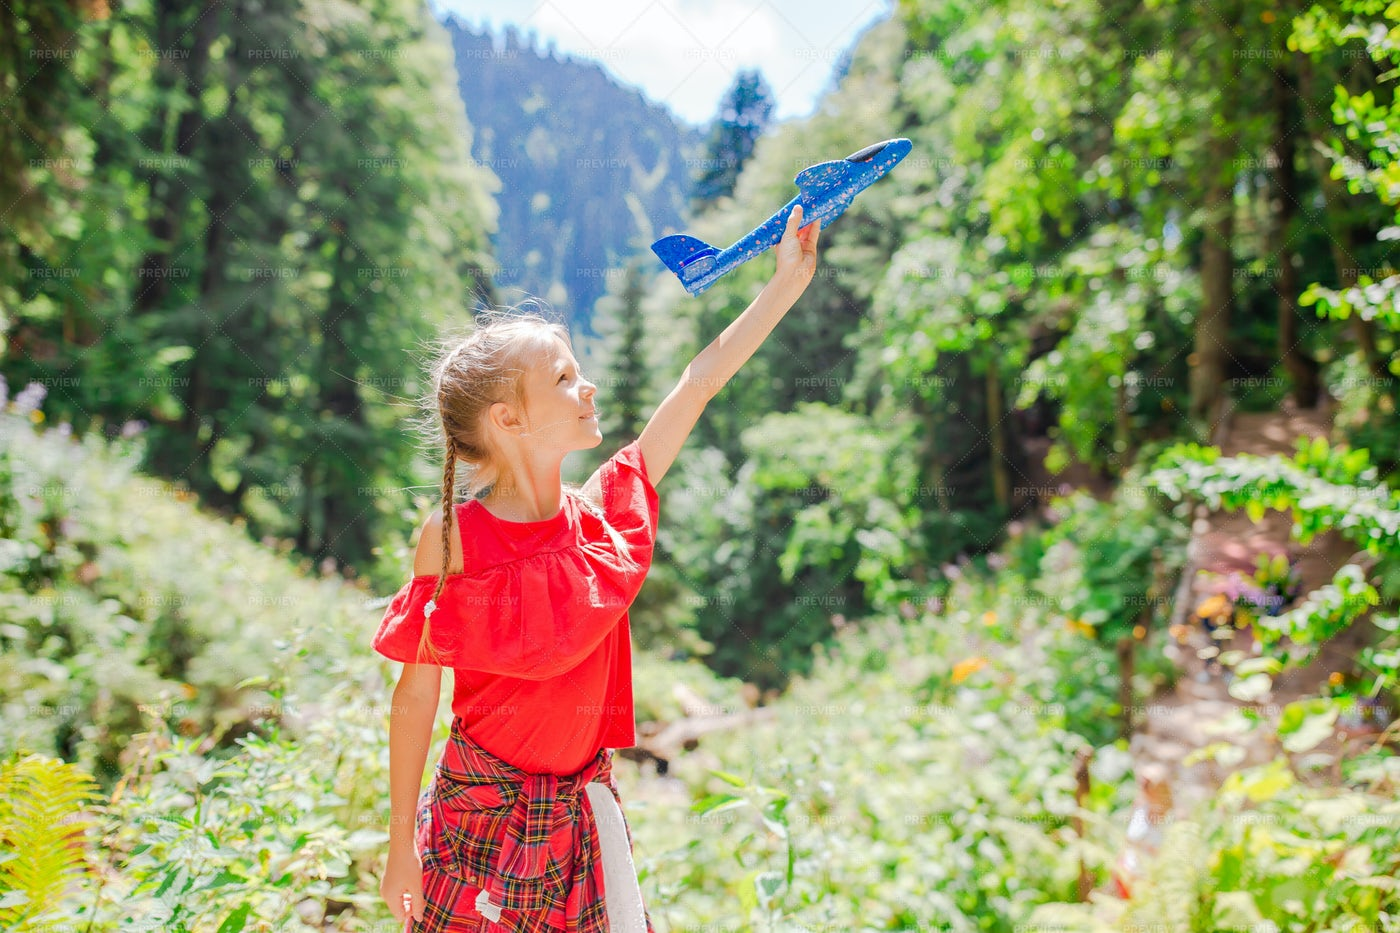 Toy Airplane In The Woods: Stock Photos